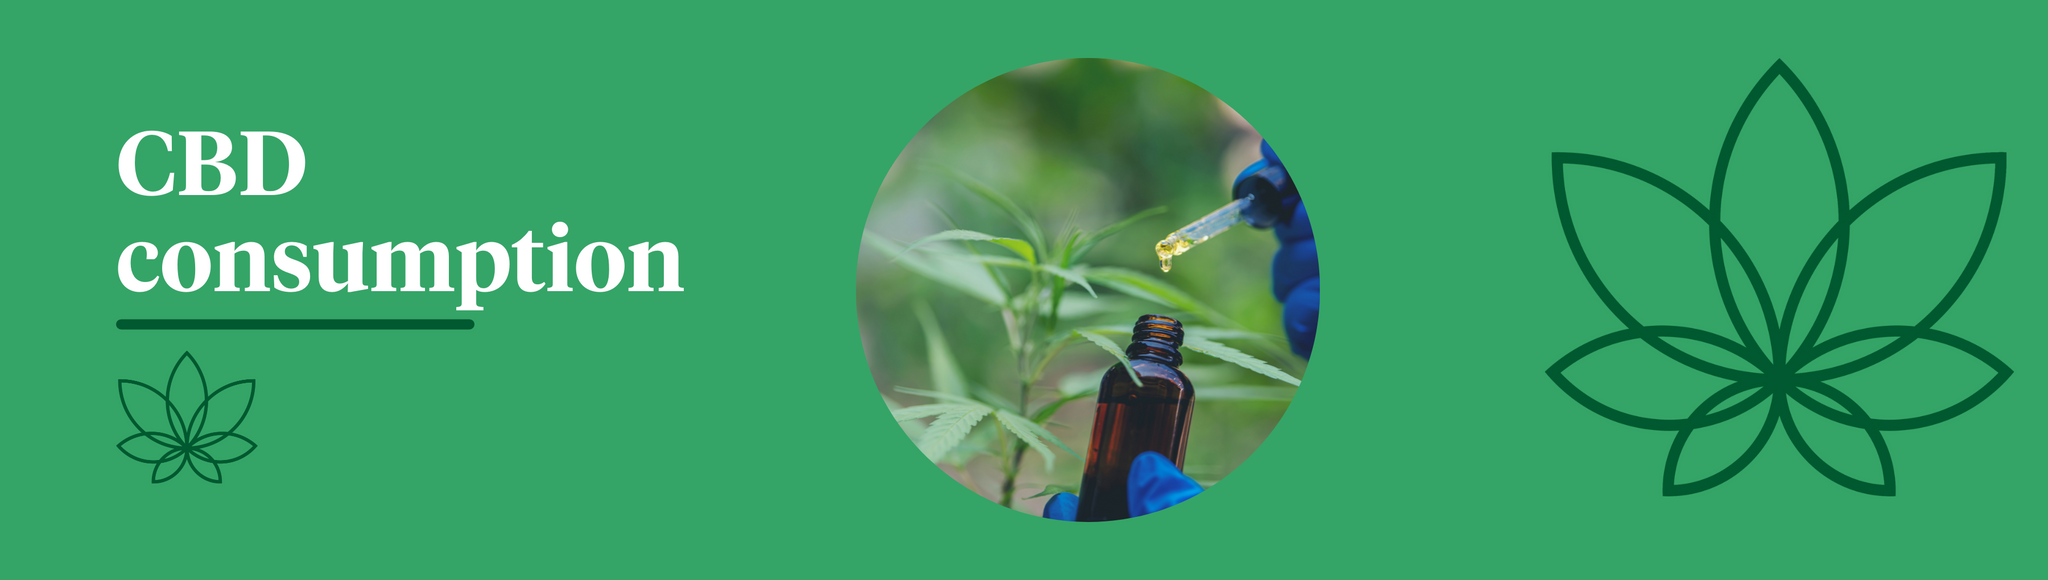 A green background with the Supreme CBD logo to the right and a person injecting CBD oil into a small jar for consumption.